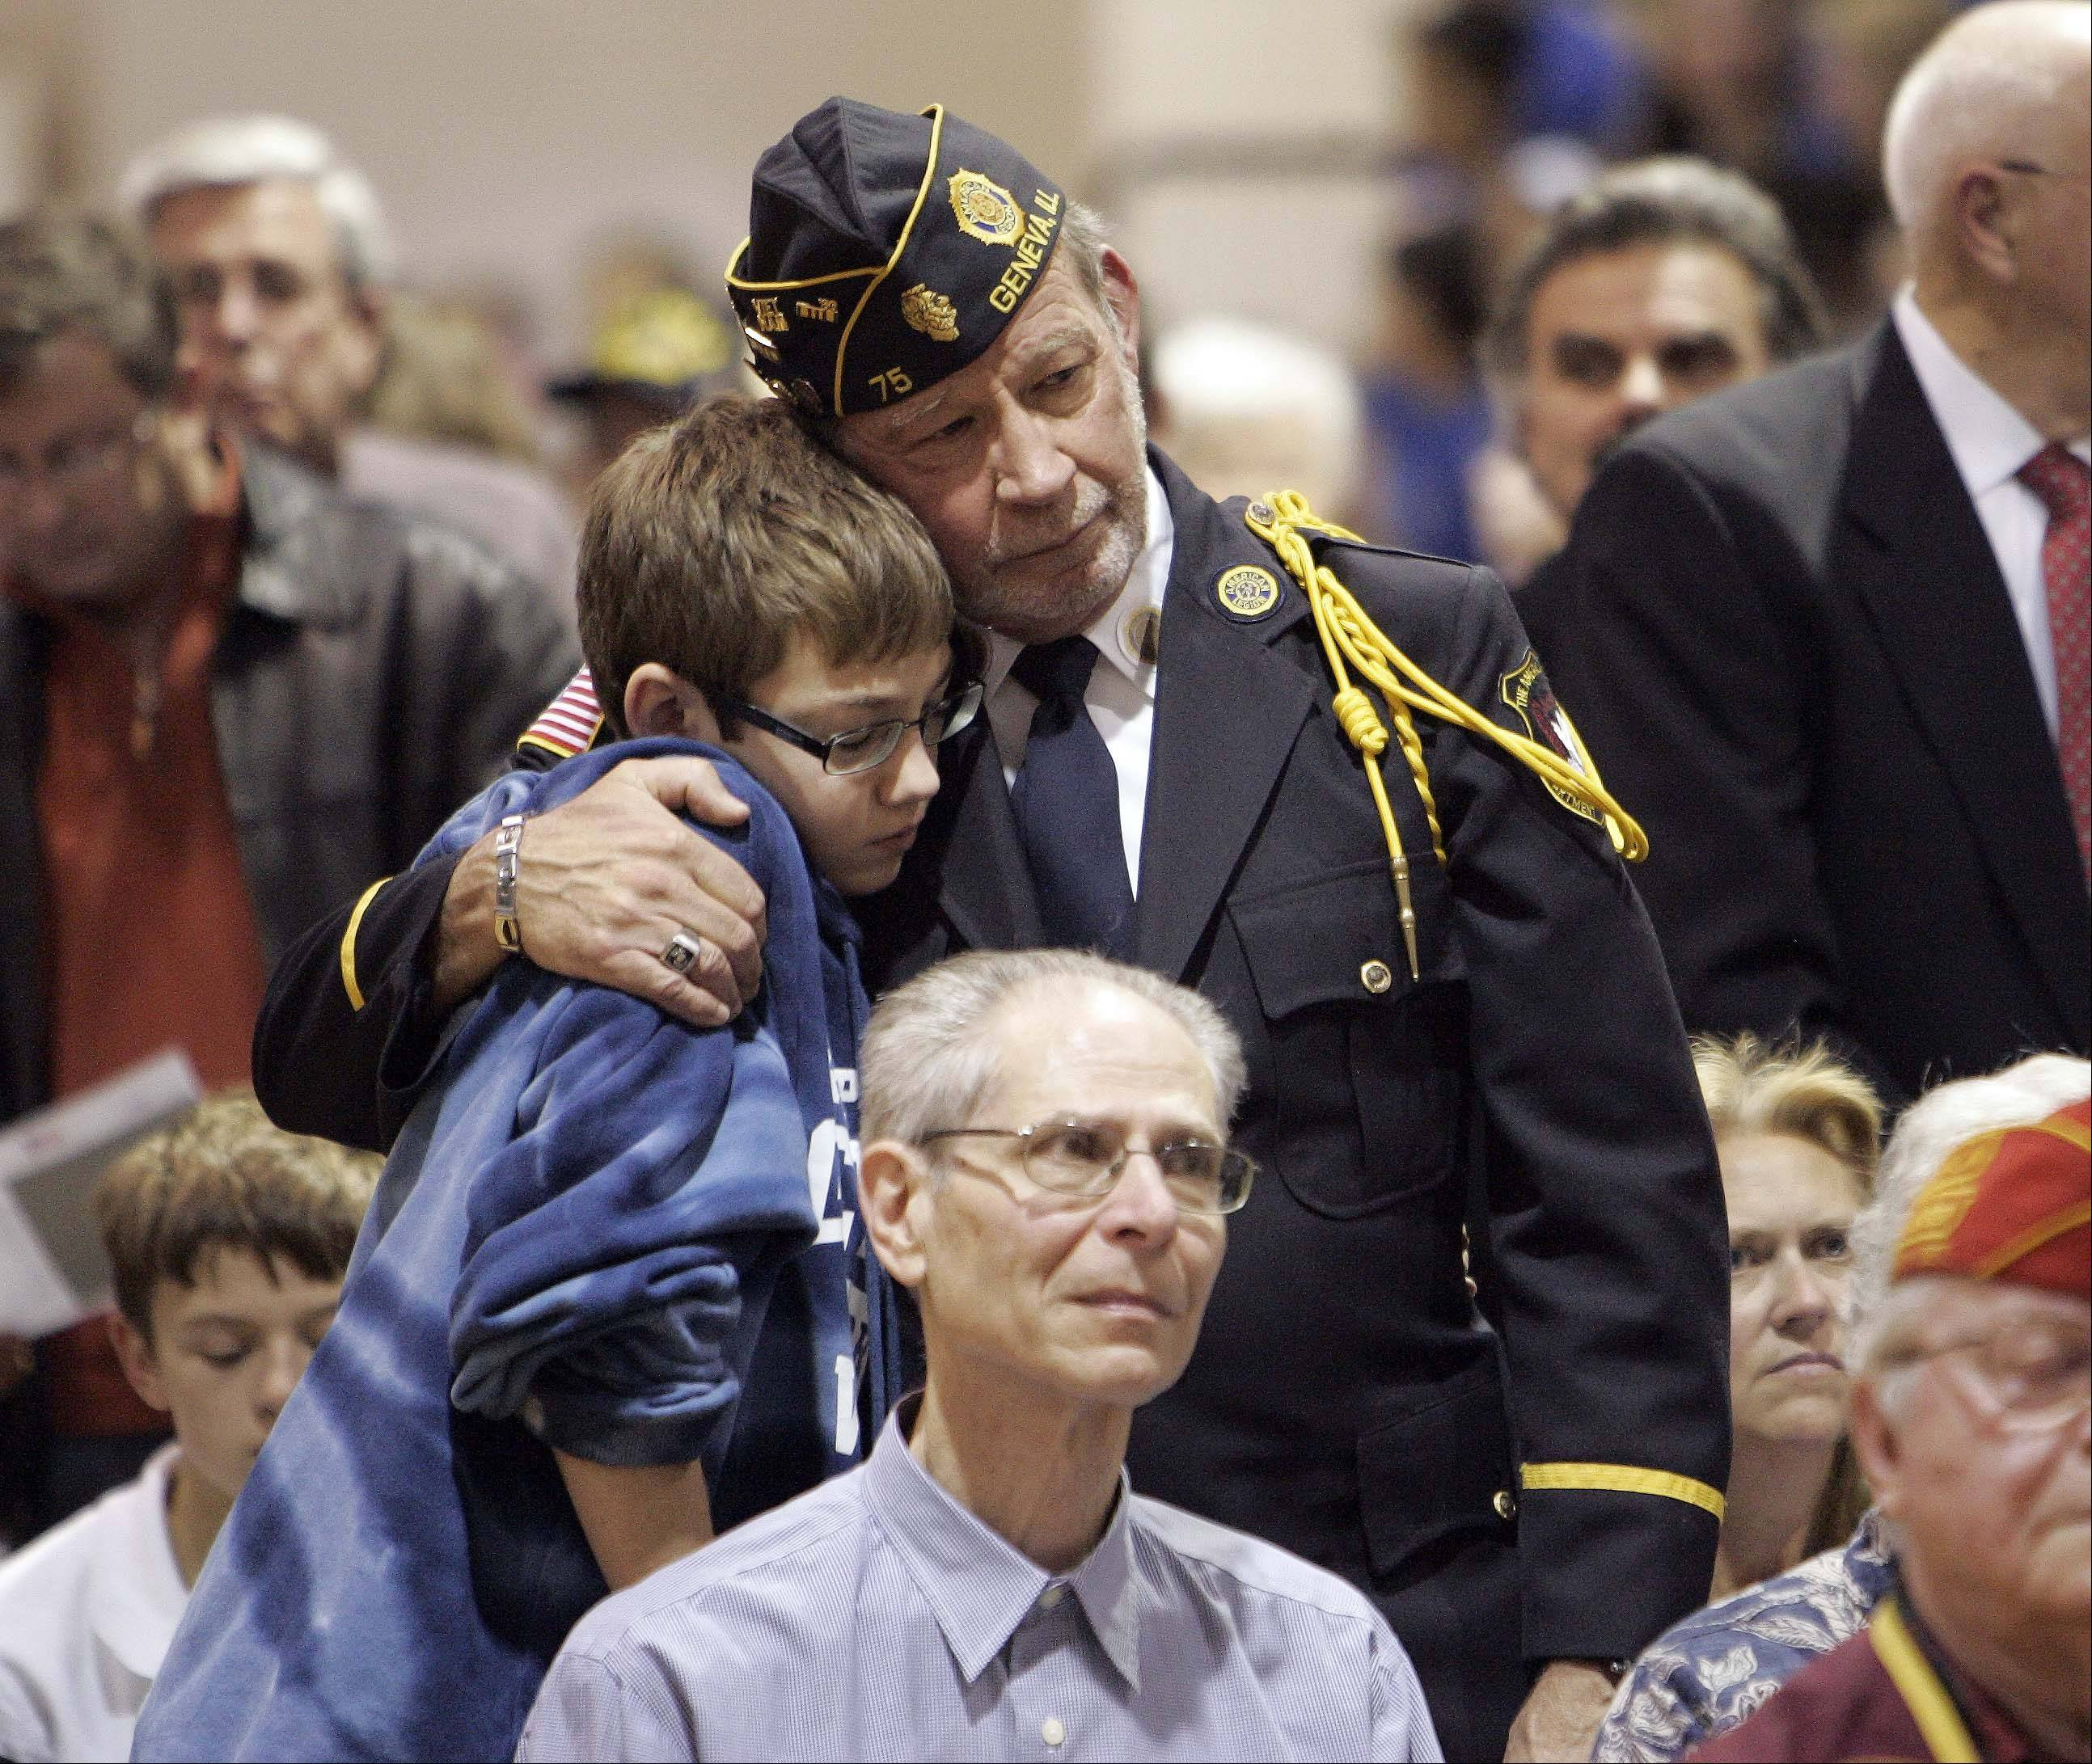 While being honored, Dennis Enneking hugs his thirteen-year-old son Joe, during the Geneva Middle School North annual Veterans Day assembly. Enneking served in Vietnam .